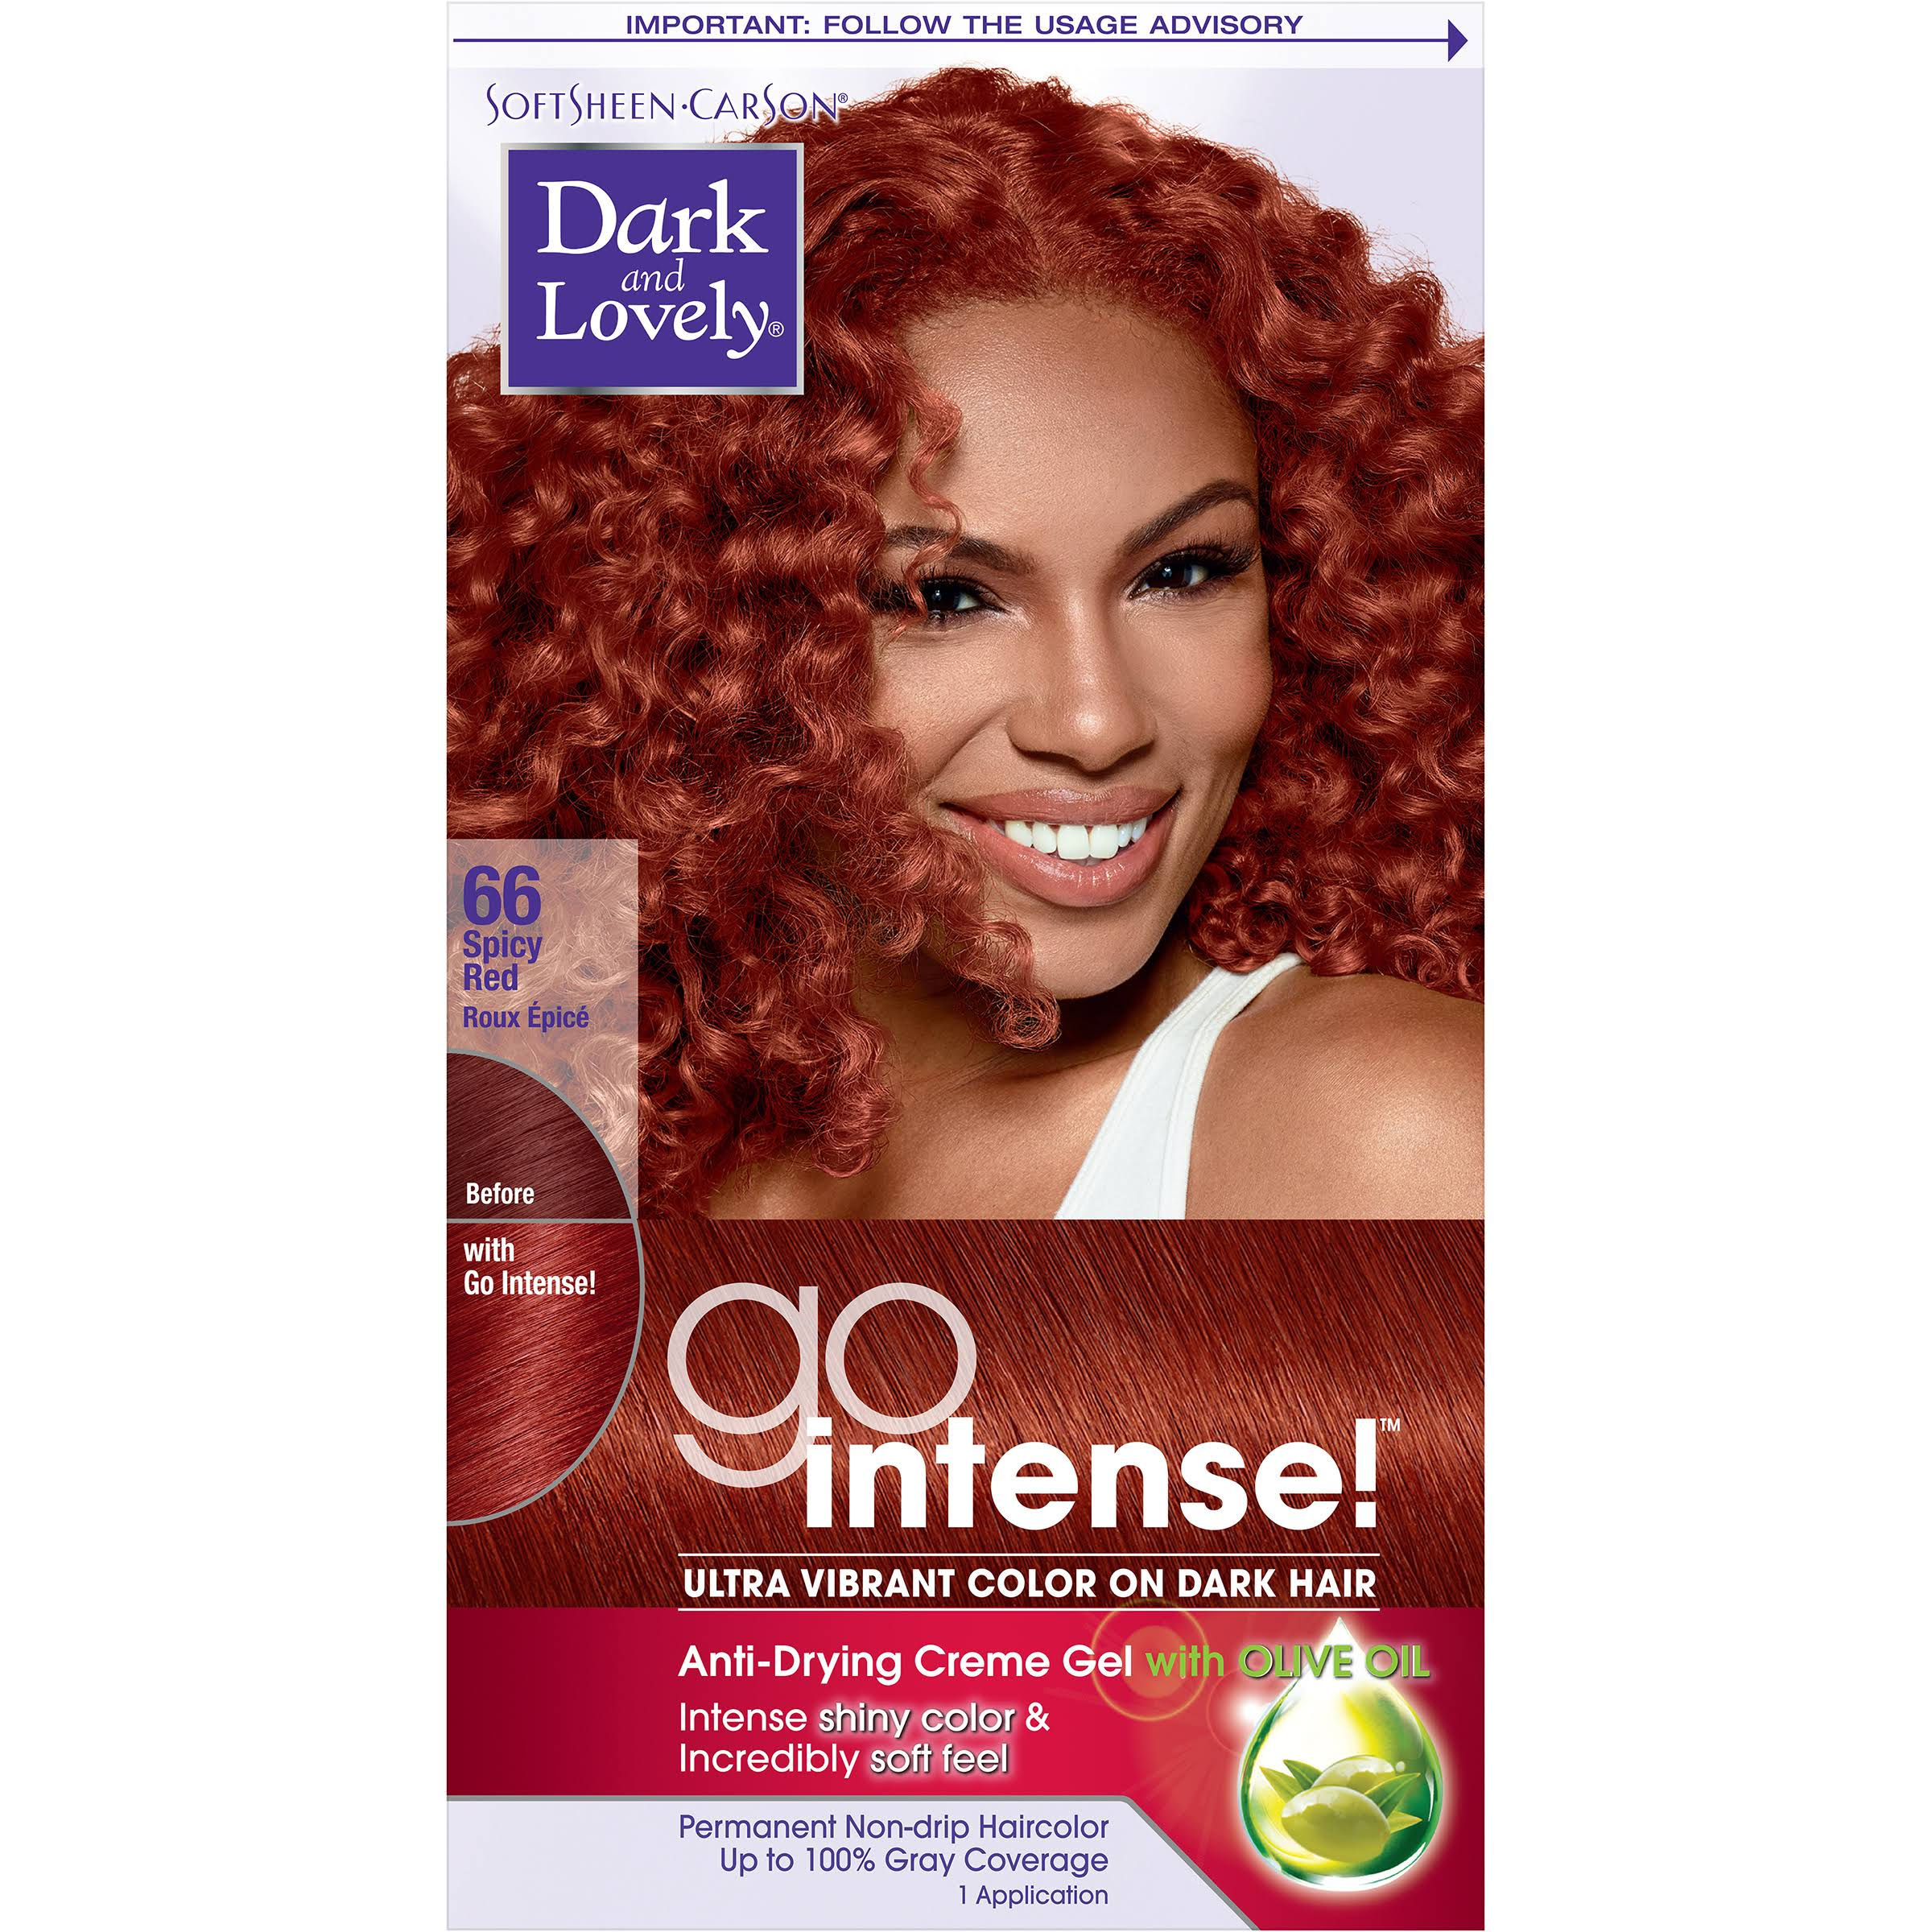 Softsheen Carson Dark and Lovely Go Intense Hair Color - Spicy Red